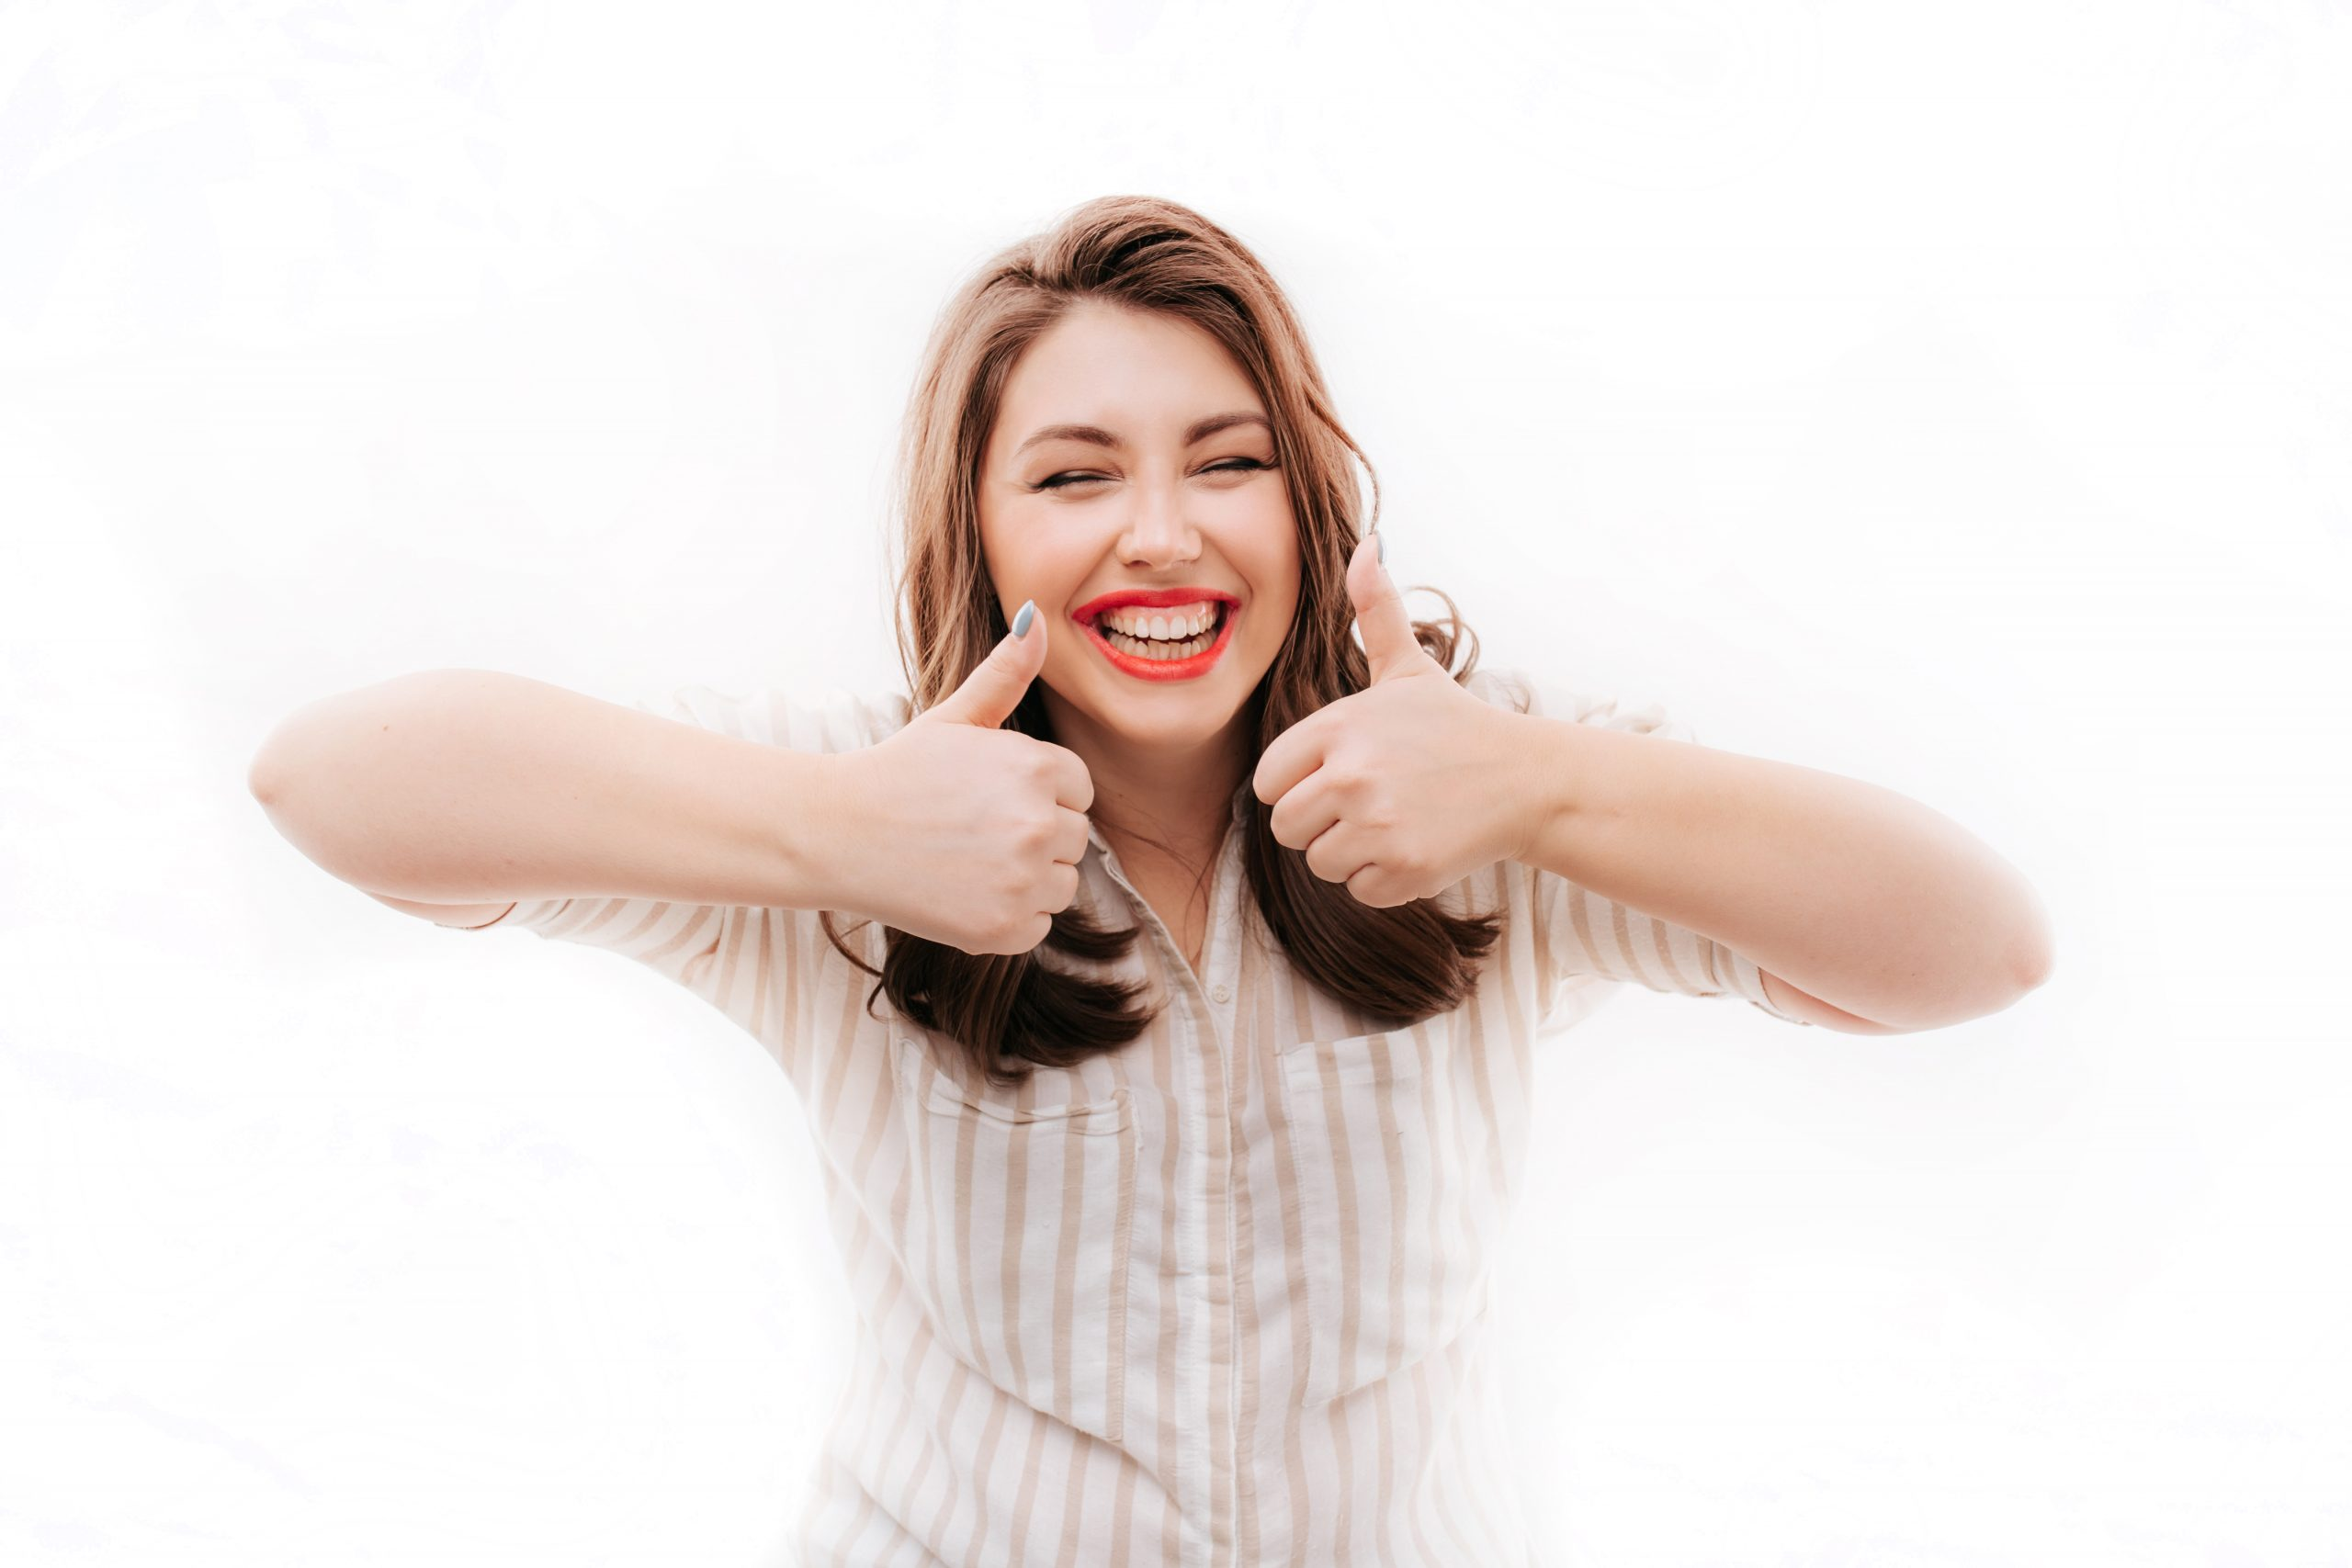 Excited plus size model gesturing thumb ups